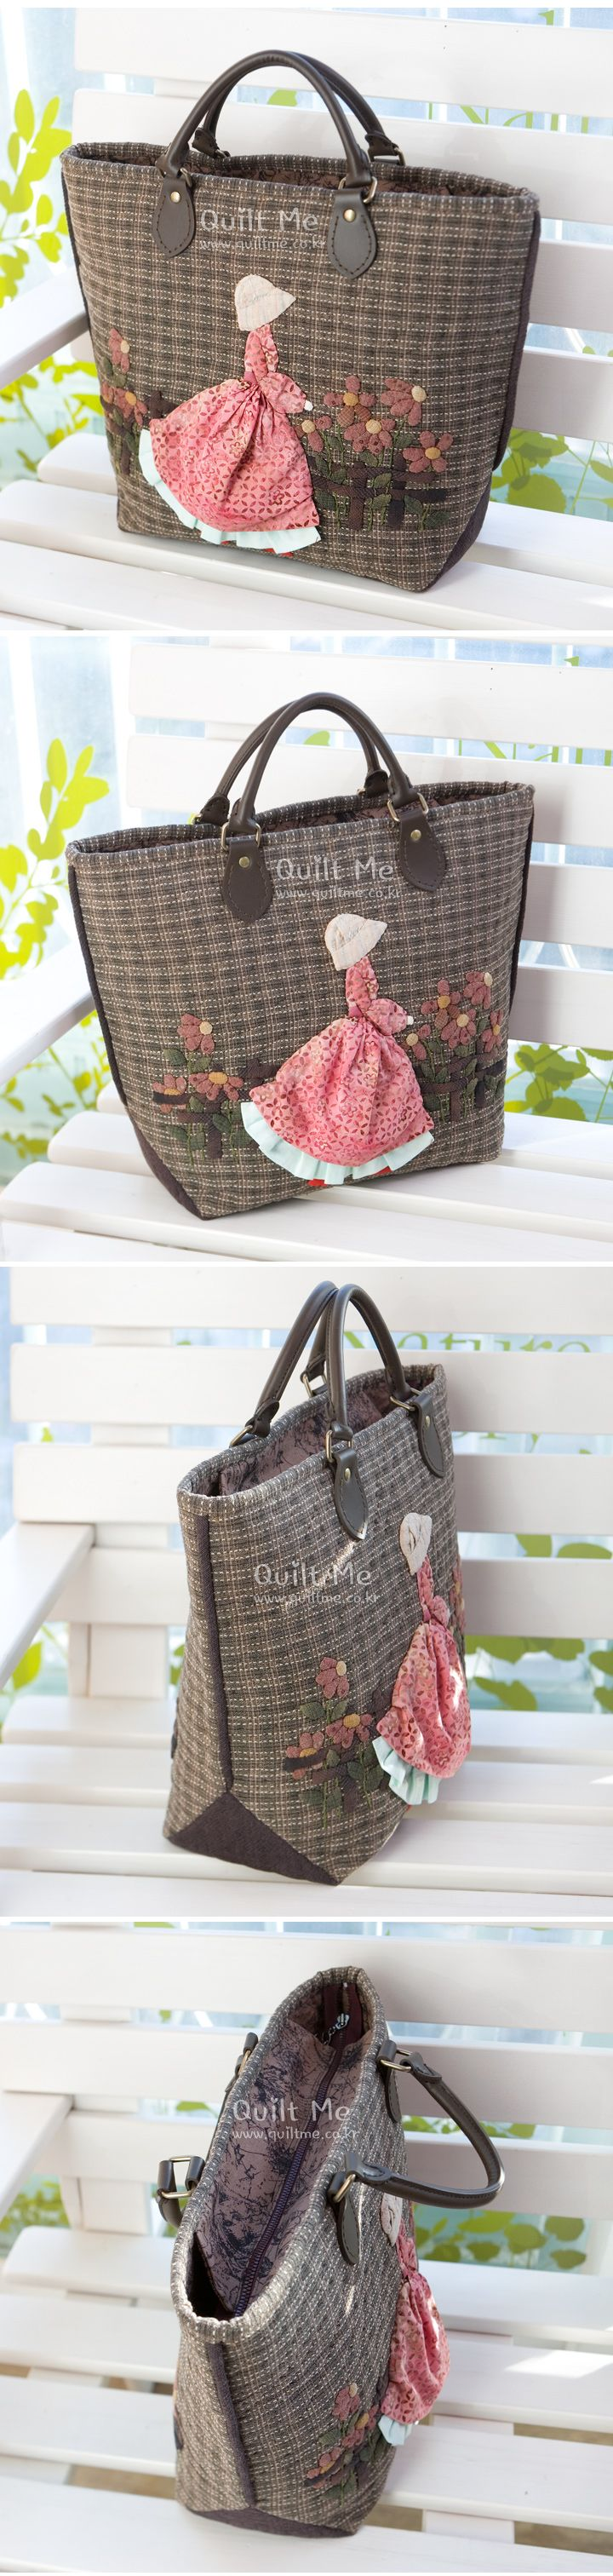 http://quiltme.co.kr/shop/shopdetail.html?branduid=137424 | Bags ...